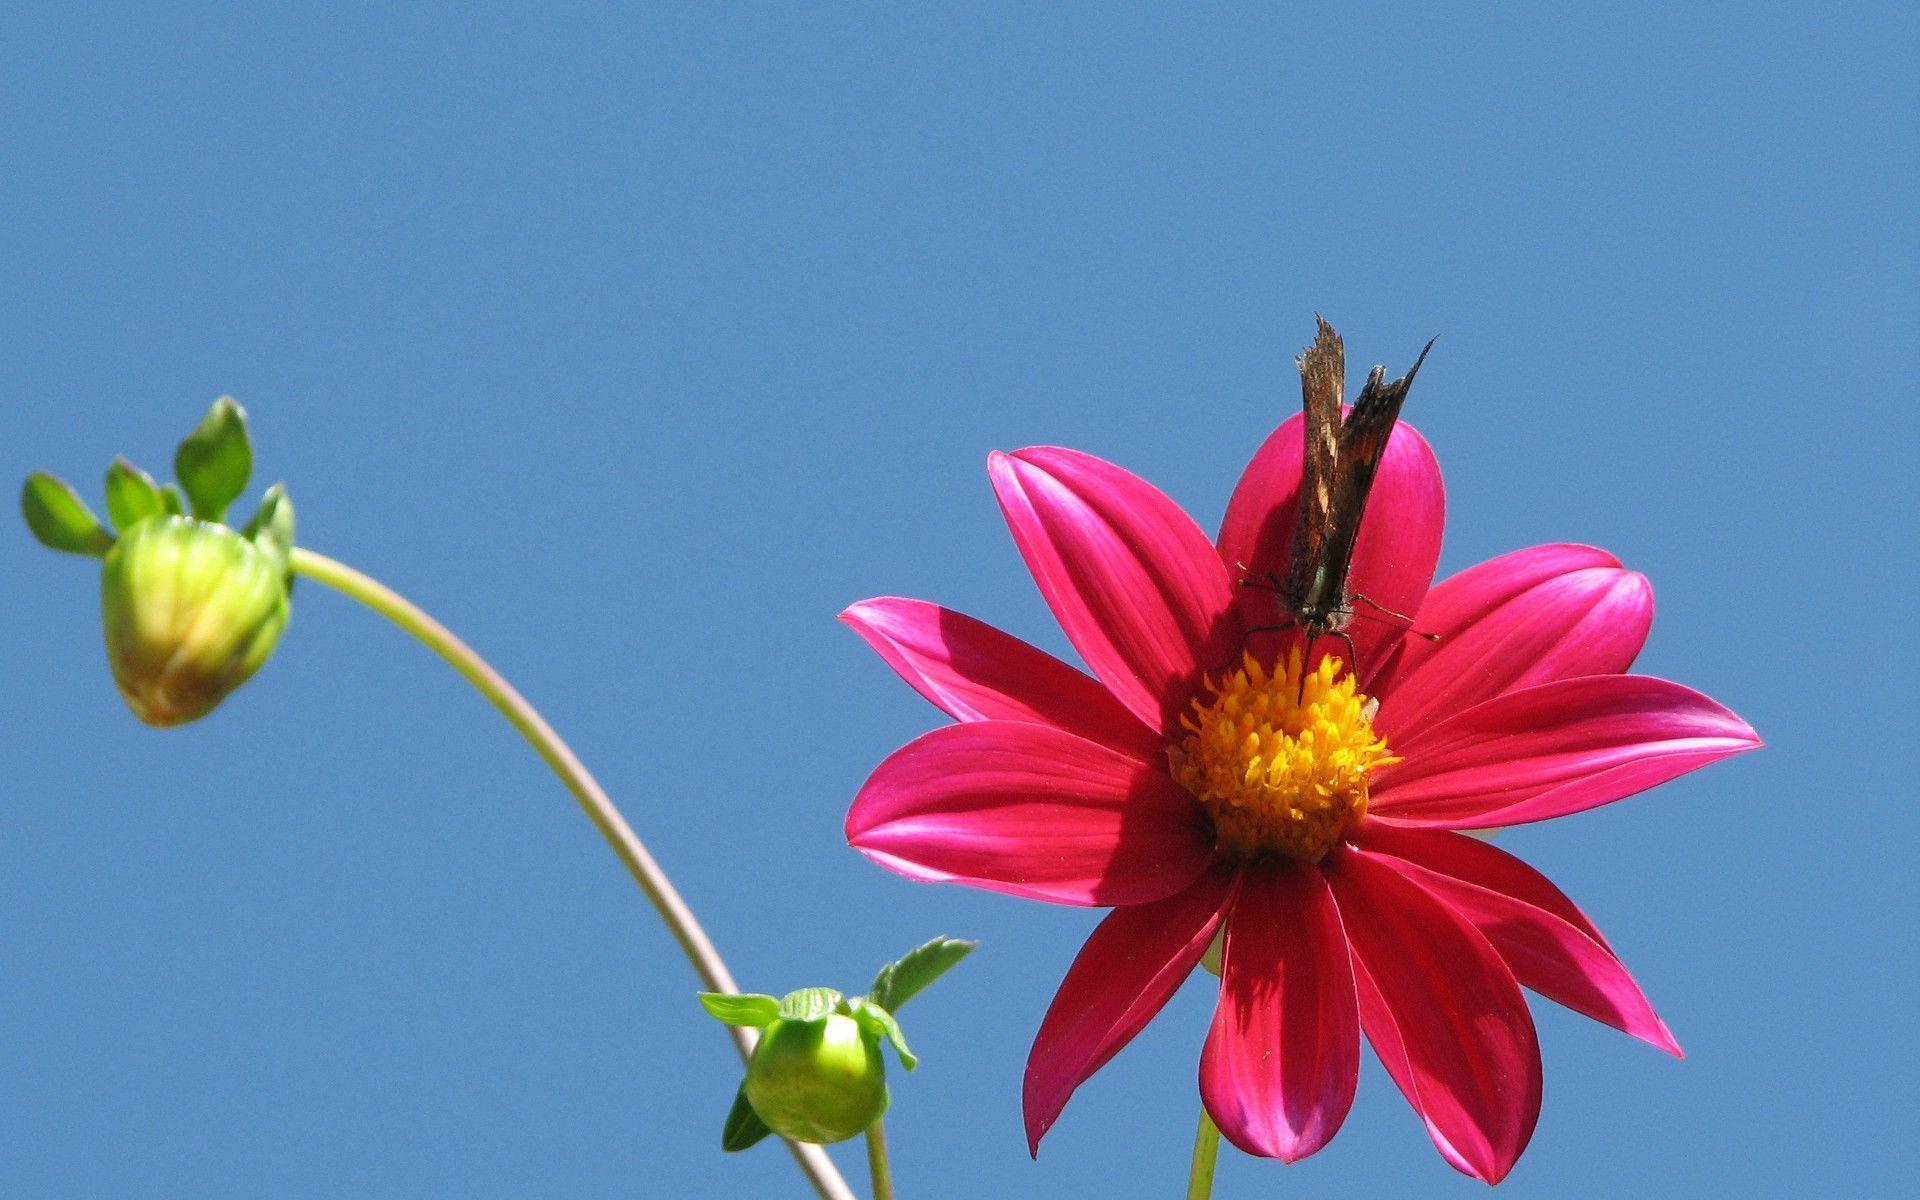 flower wallpapers widescreen space - photo #10